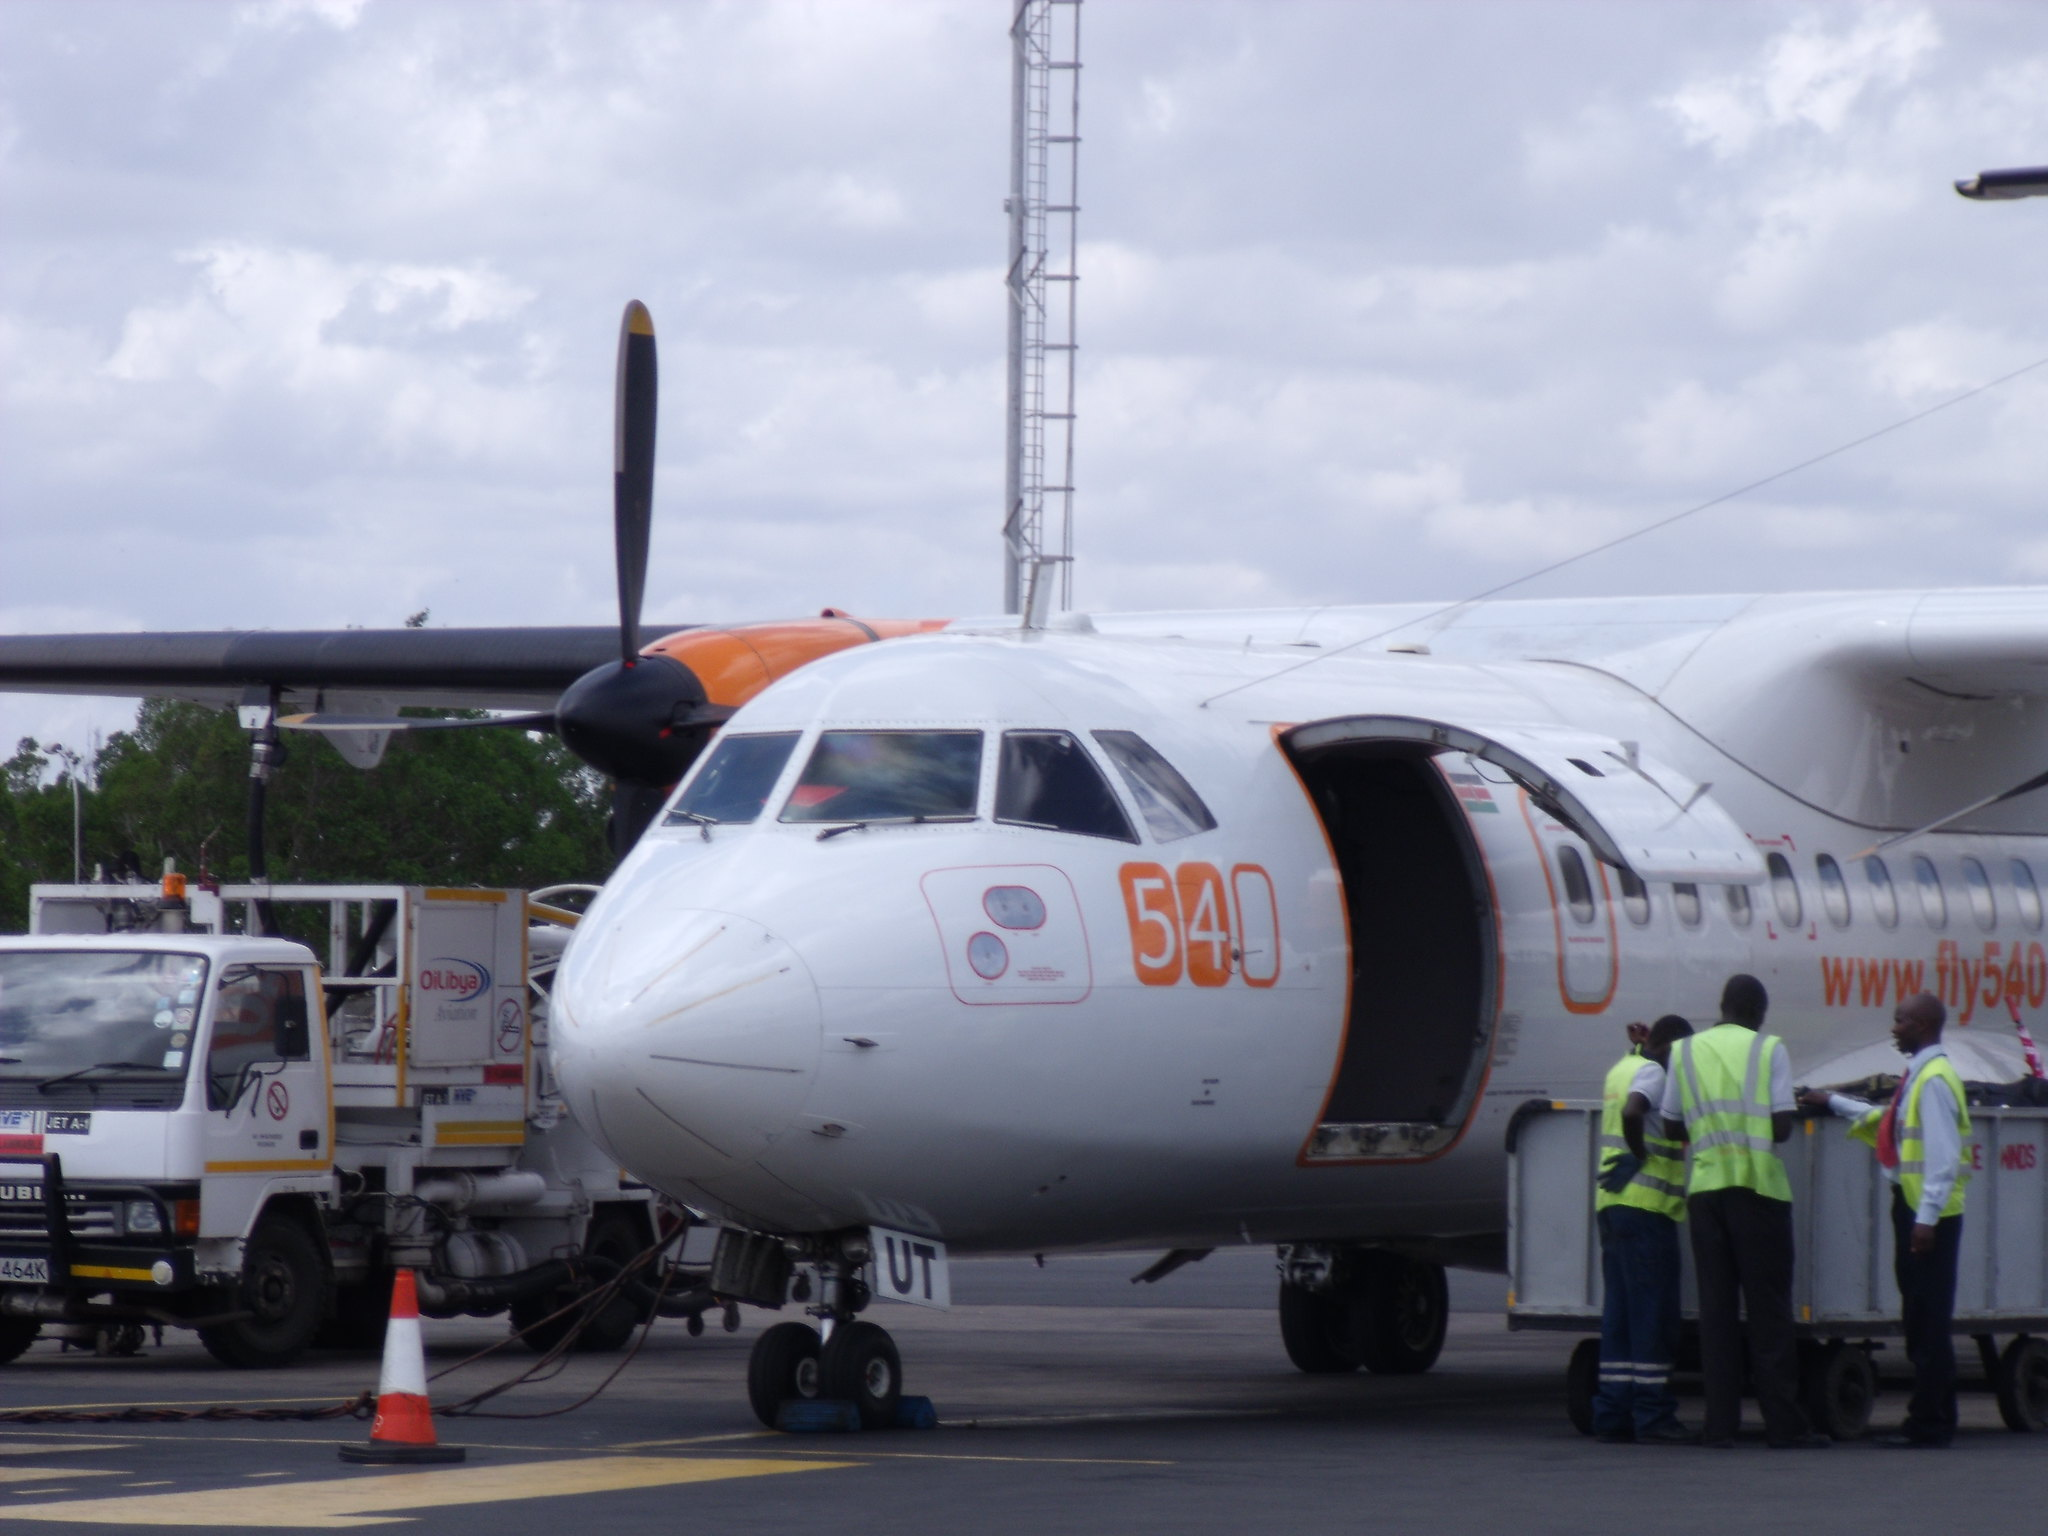 5Y-BUT ATR42-320 Fly540 - Africa's Low-Cost Airlines